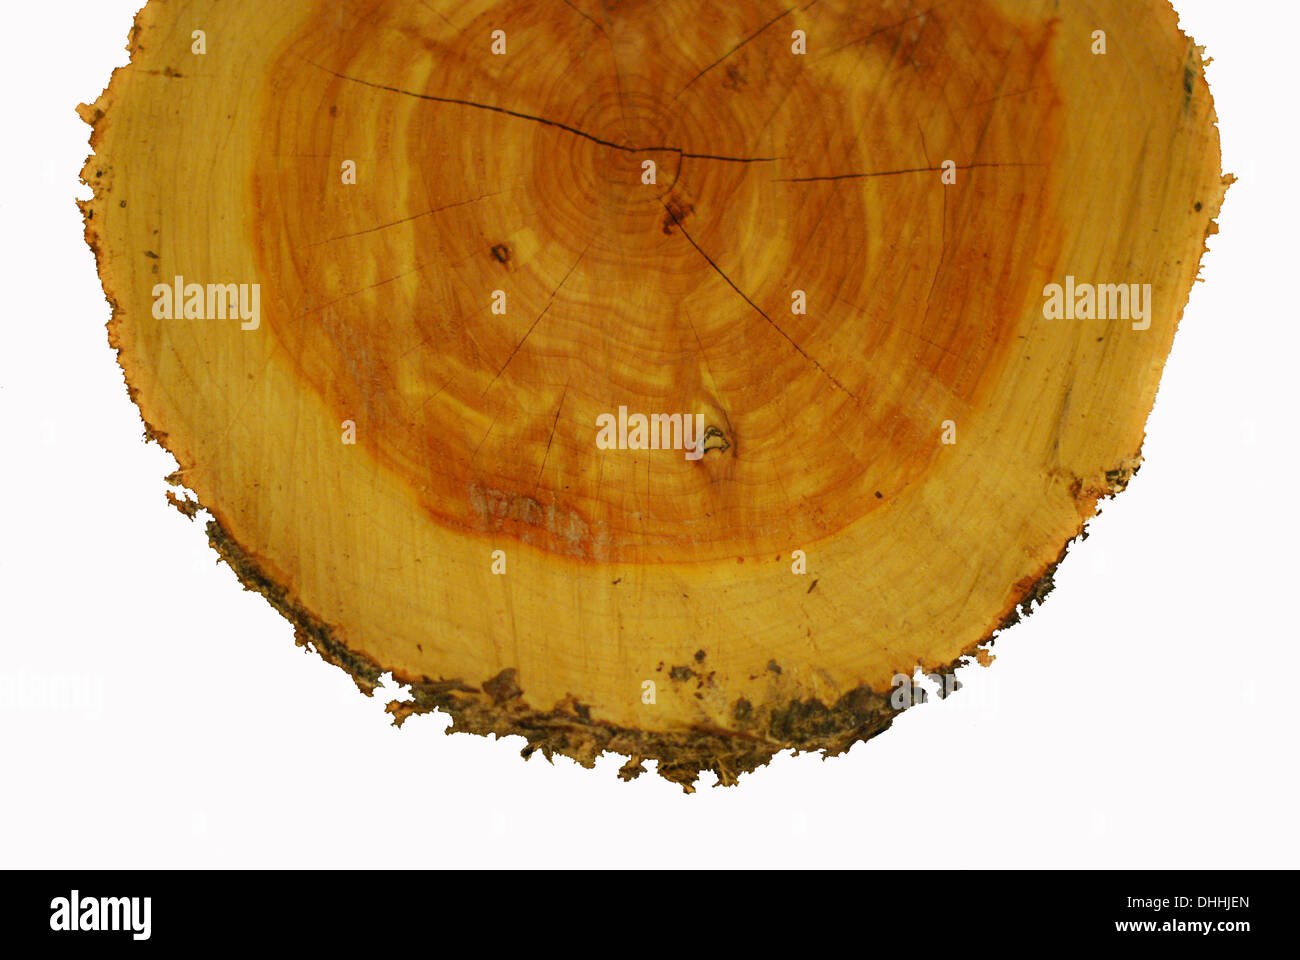 Cross section of a cedar tree trunk - Stock Image